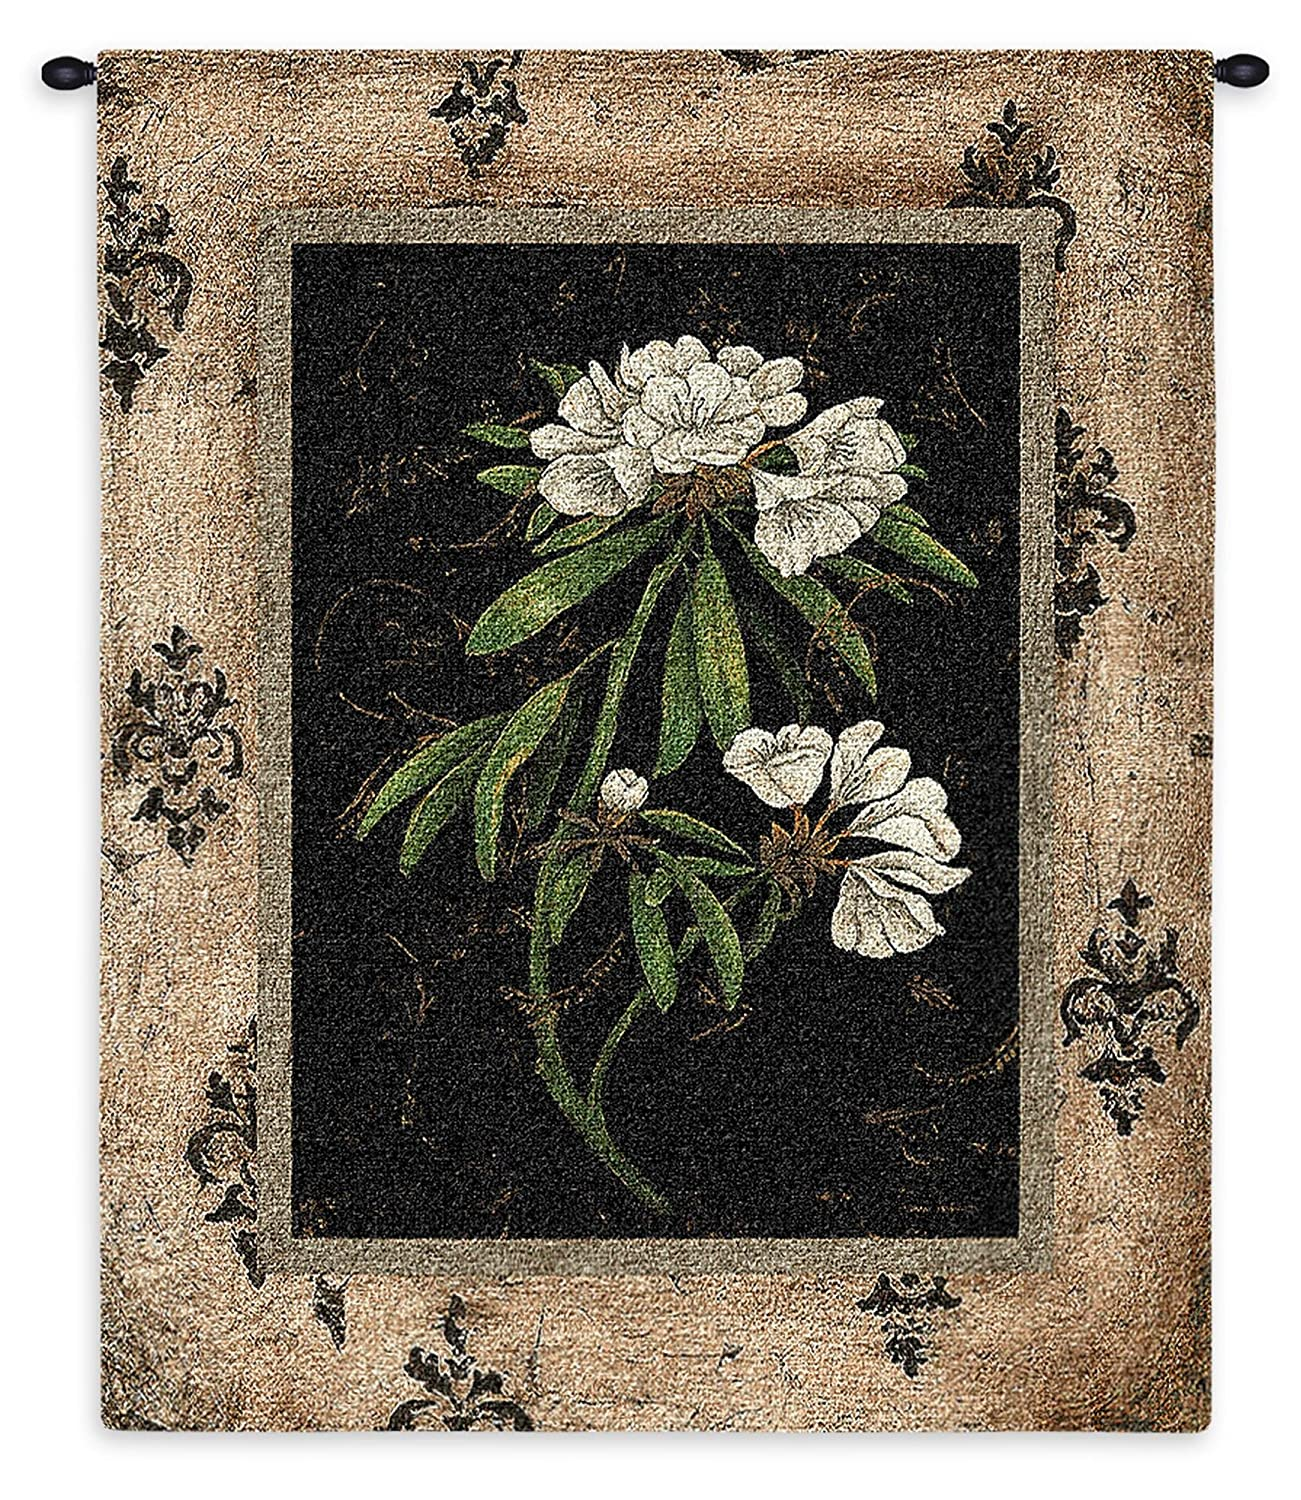 Woven Tapestry Wall Art Hanging 100/% Cotton Botanical Floral Rhododendron Flowers Earthy Frame Artwork Pure Country Weavers Silver Rhododendron by Regina-Andrew USA 33X26